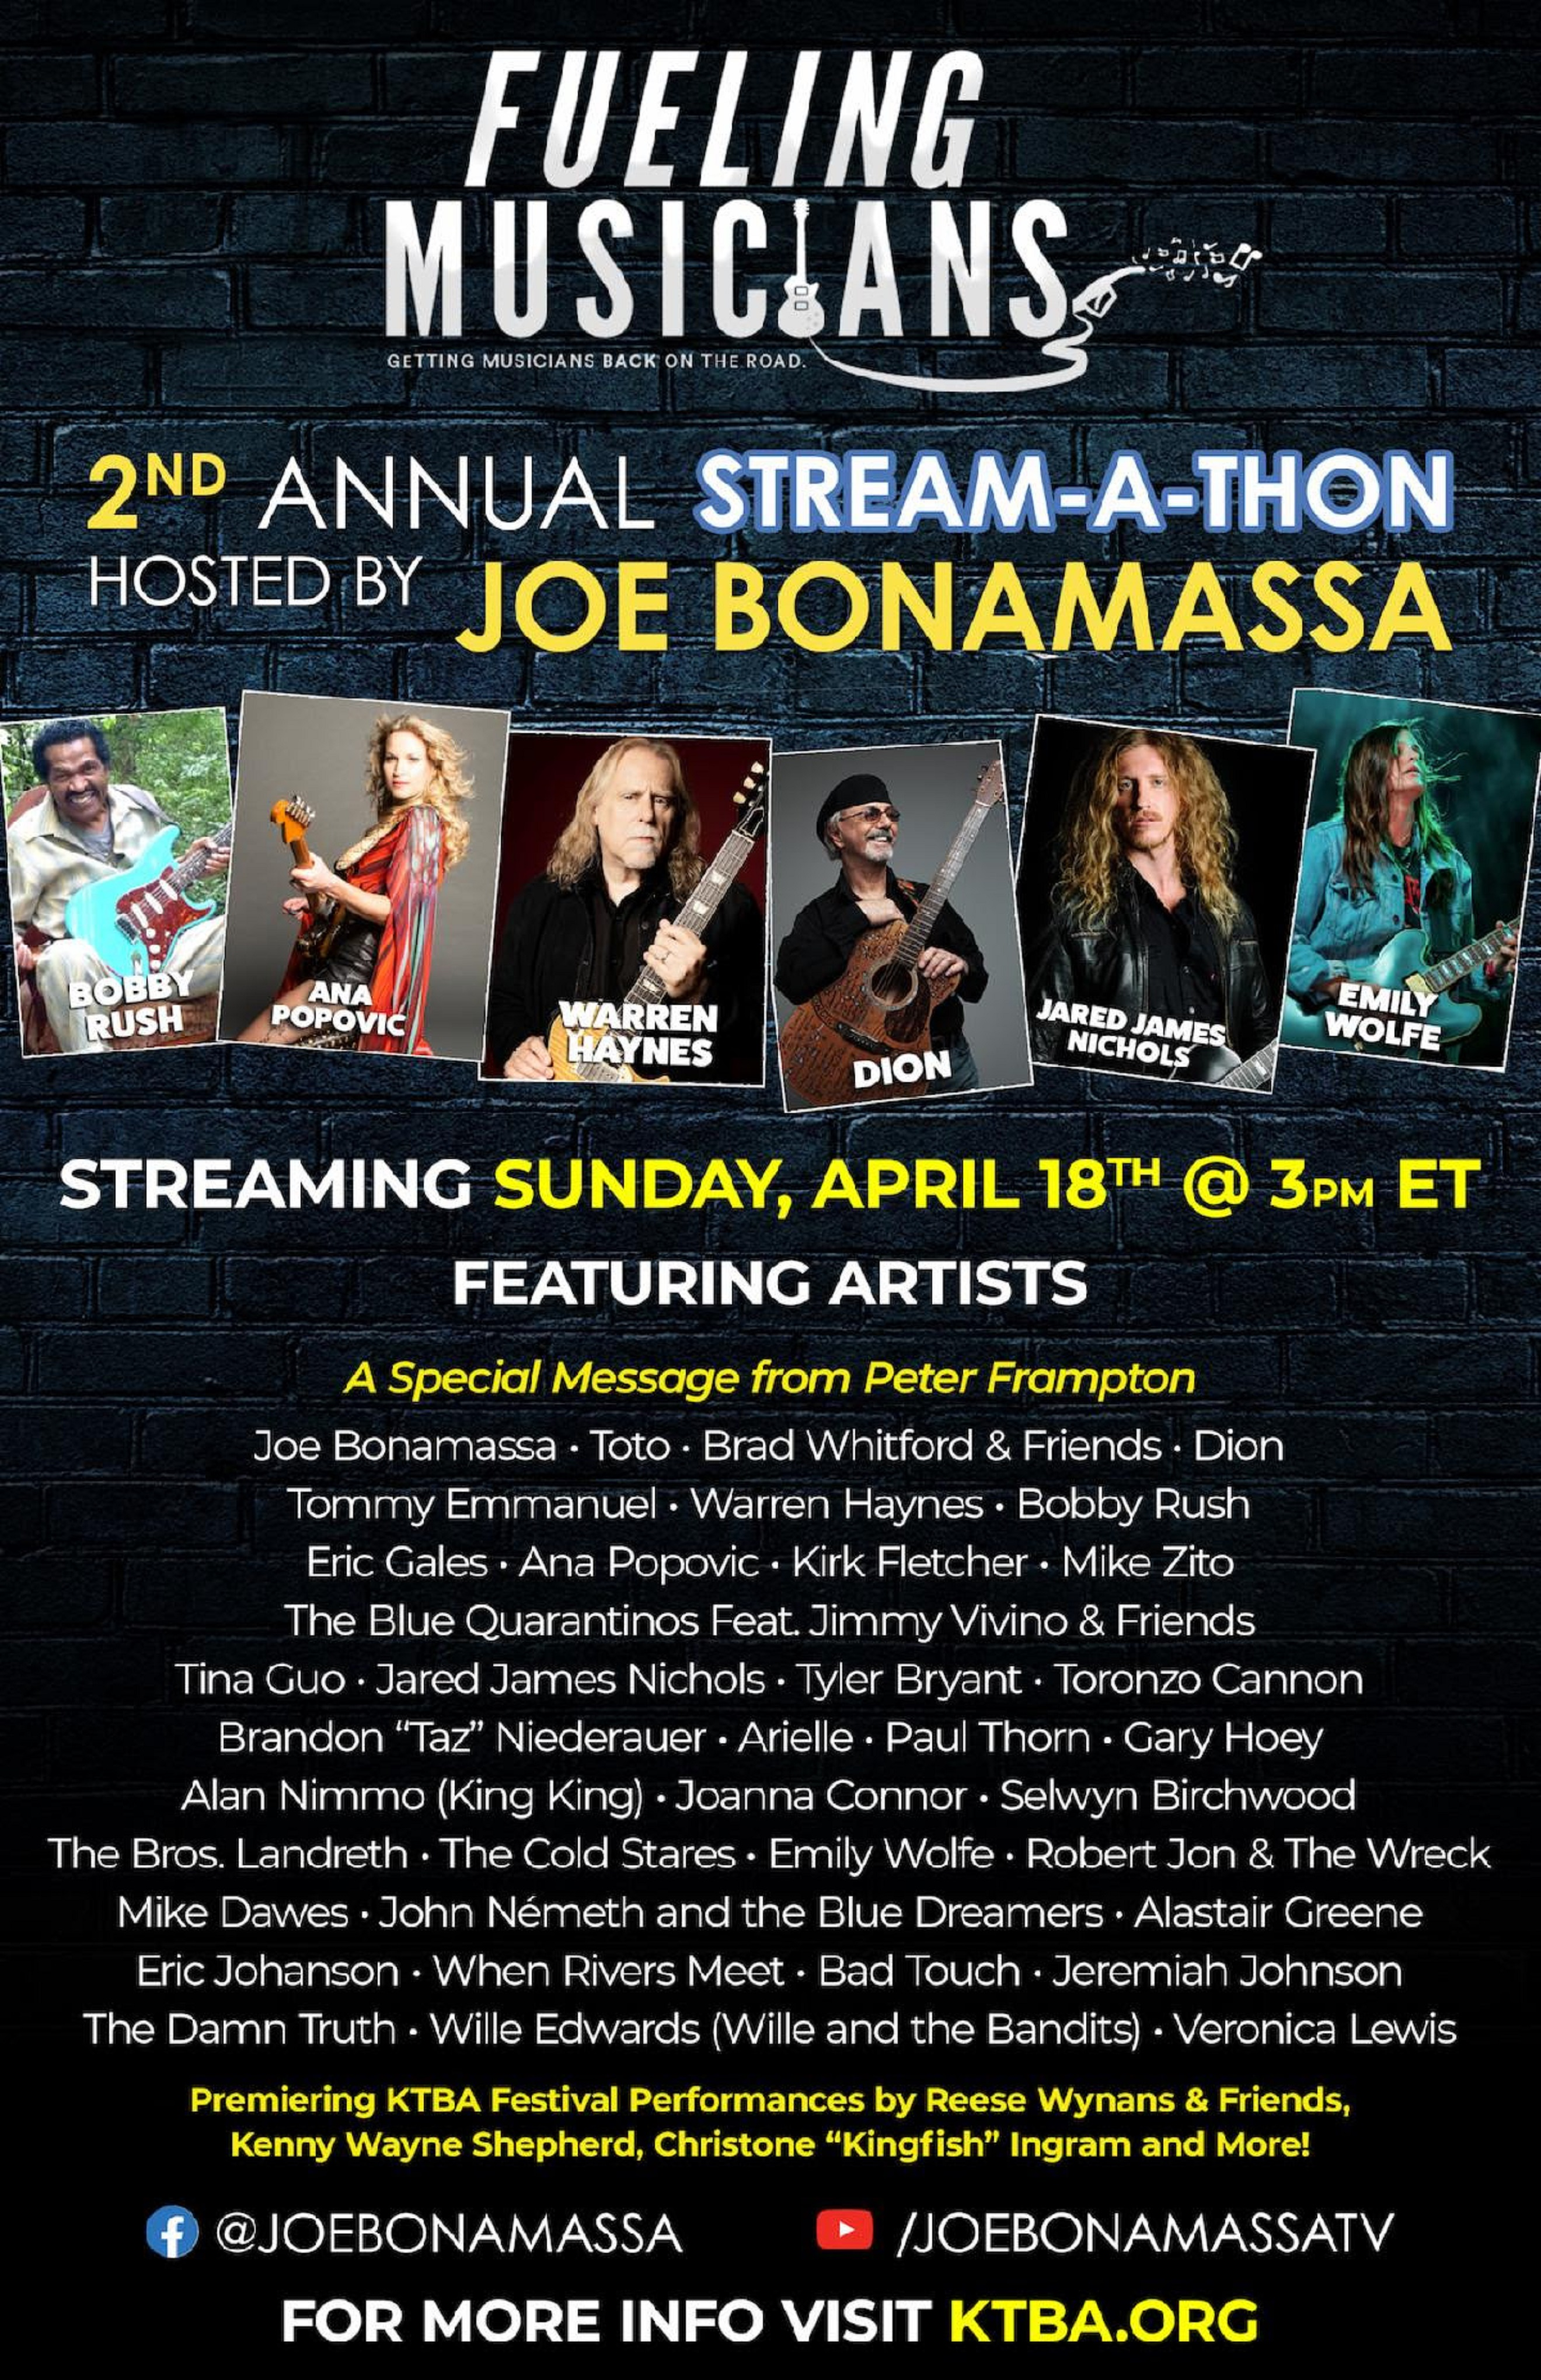 Joe Bonamassa to host 2nd annual Stream-A-Thon this Sunday 4/18 @ 3pm ET; Raising money for musicians impacted by COVID-19